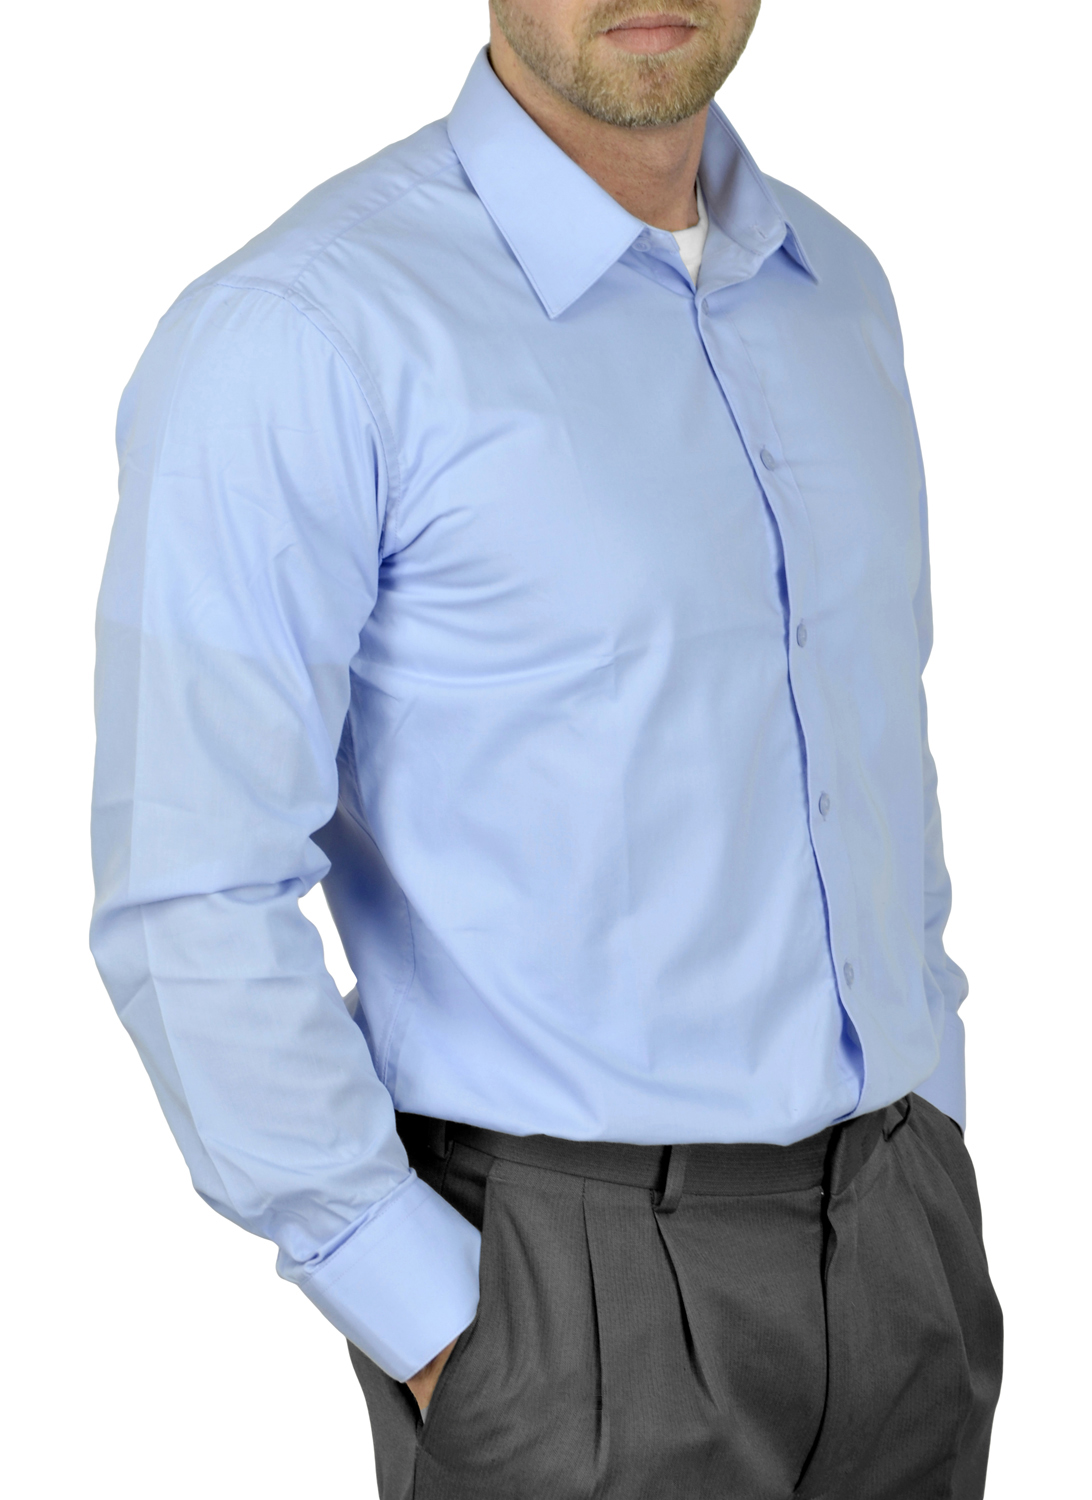 Moda Di Raza Mens Dress Shirt Slim and Regular Fit Office Casual French Cuff Baby Blue 17.5